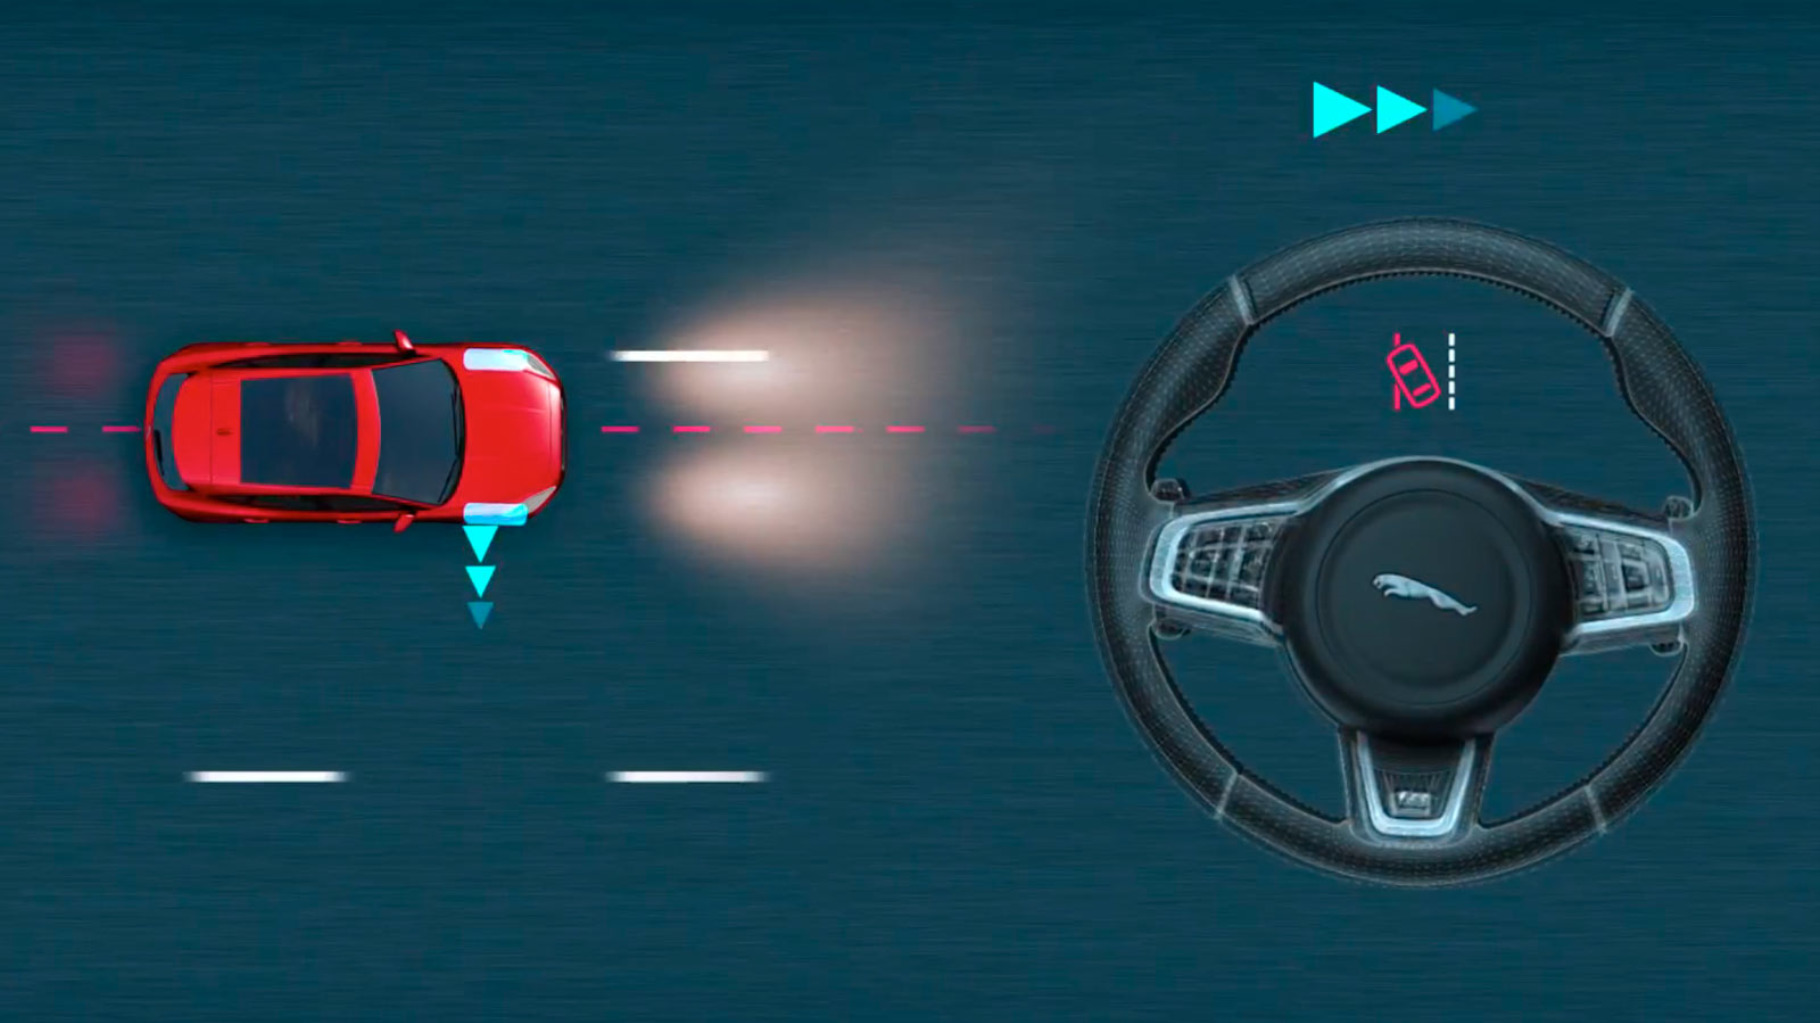 Diagram of Jaguar E-Pace Lane Keep Assist detecting unintentional lane drift and applying corrective torque.